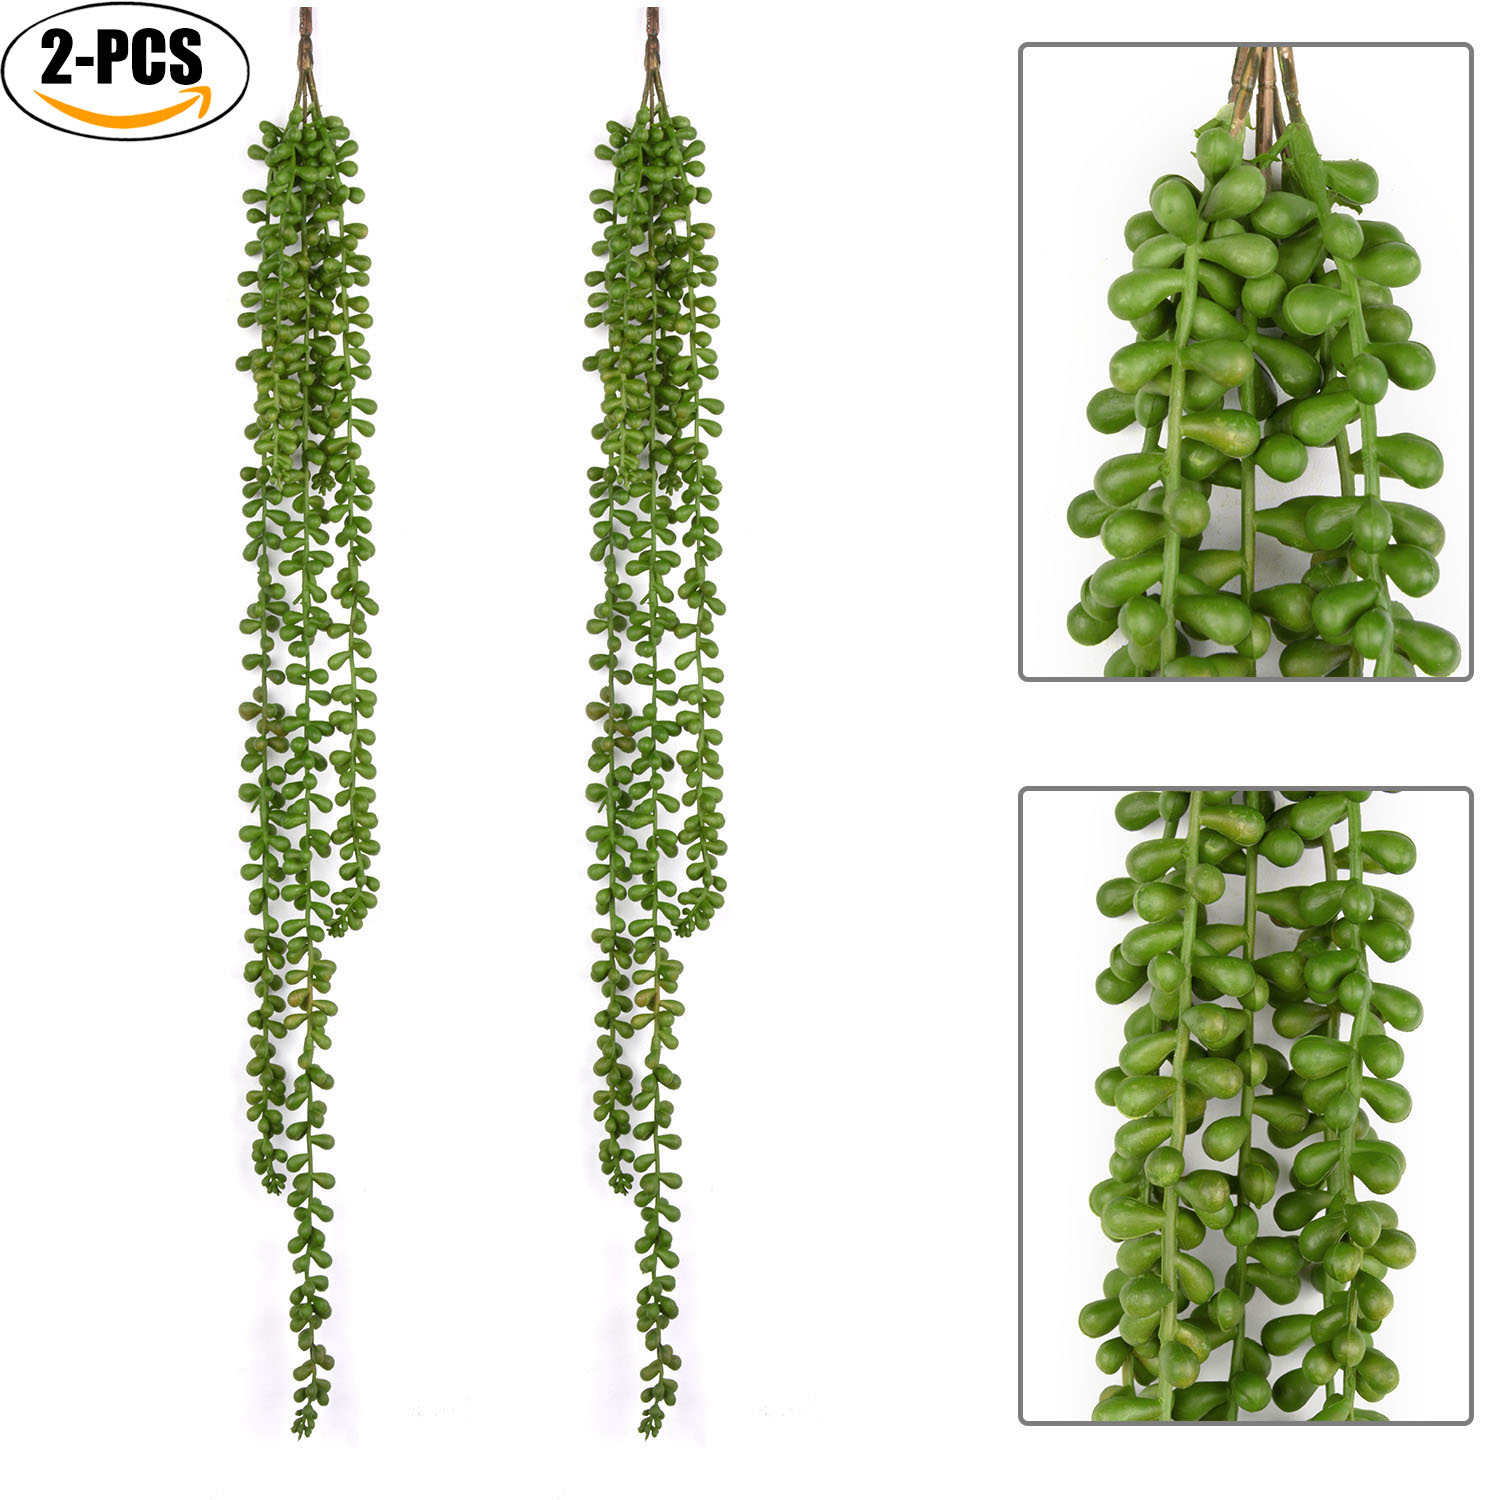 Outgeek 2Pcs Green Artificial Hanging Plant Fake Succulent String of Pearls Fake Hanging Plants Natural Art Decoration for Home Garden Wedding Party Decor, 77*67cm